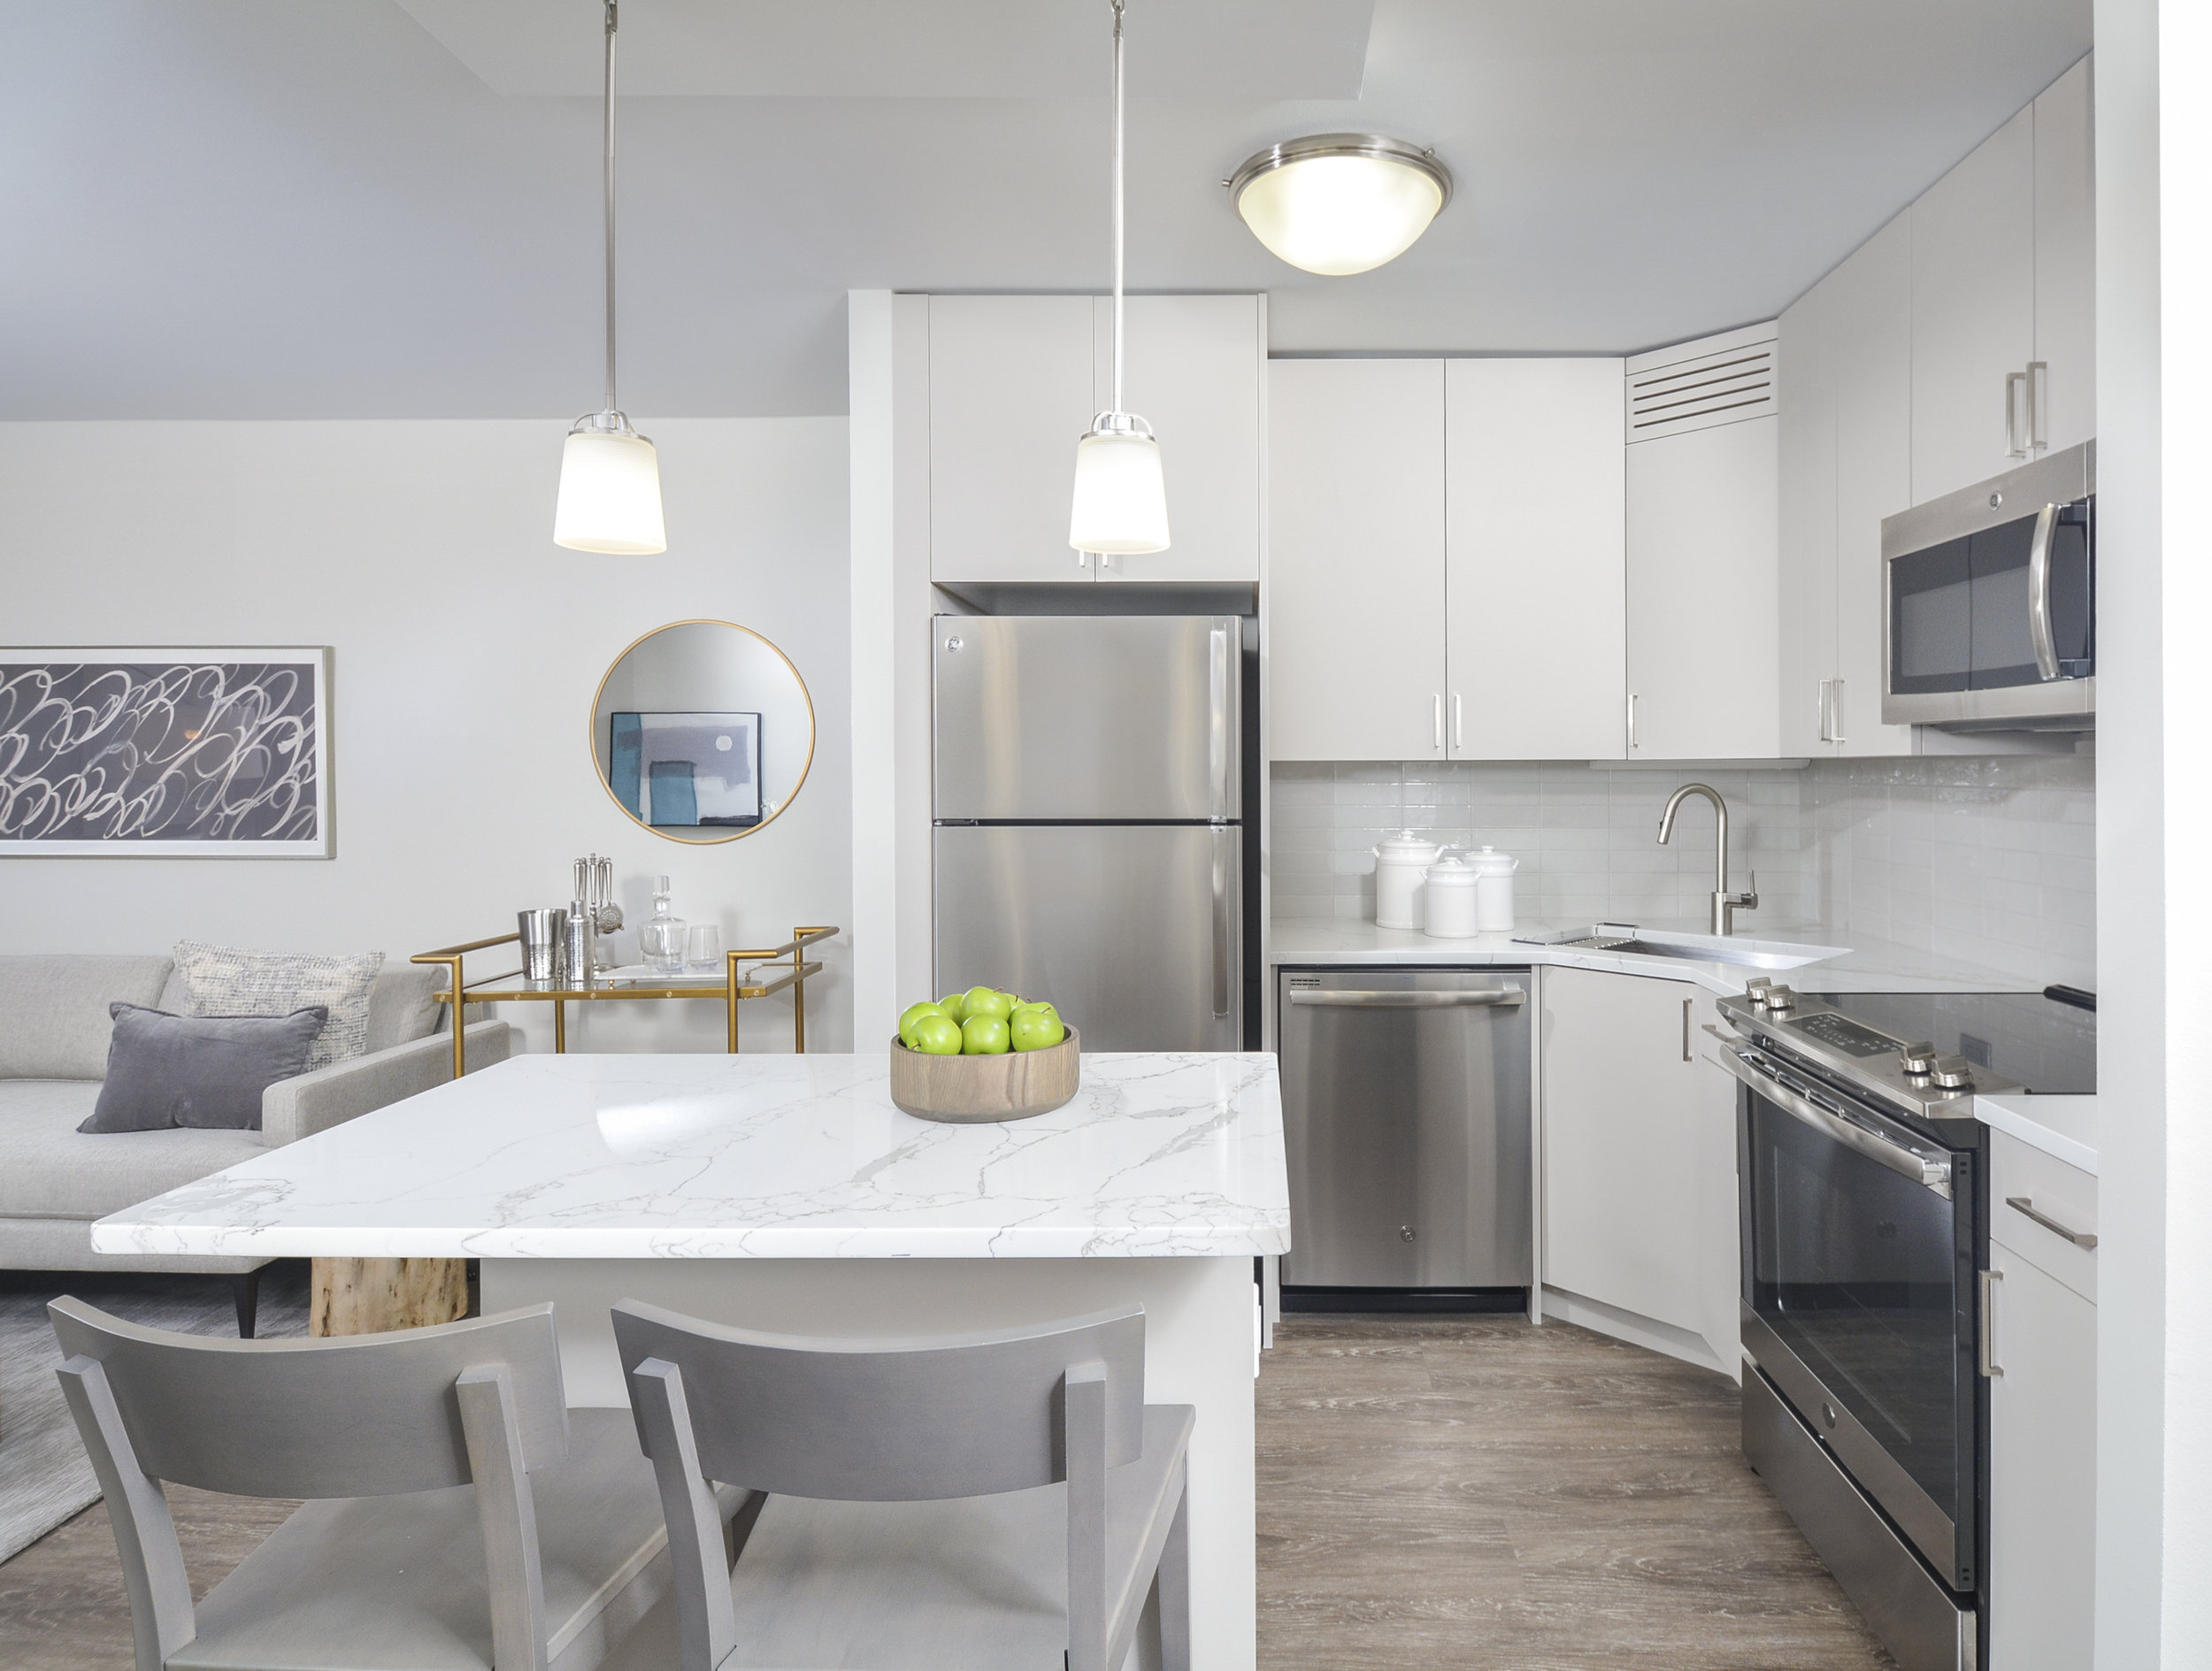 A cool grey backsplash and warm cabinets allows for the kitchen to feel like a natural part of the space.